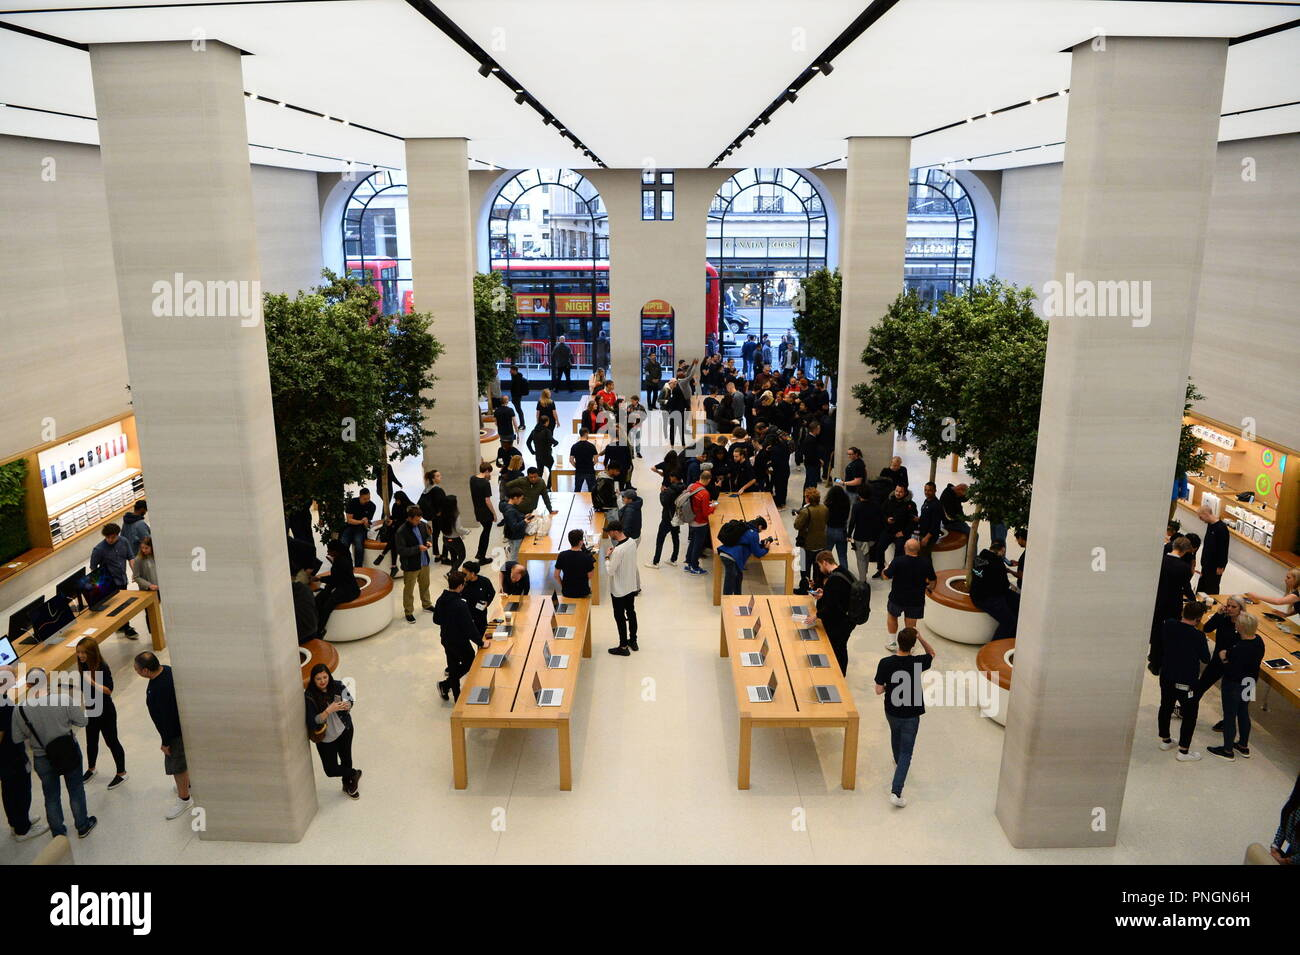 The Apple Store in Regent Street, central London, as the iPhone XS and XS Max go on sale in the UK for the first time, alongside the Apple Watch Series 4. - Stock Image